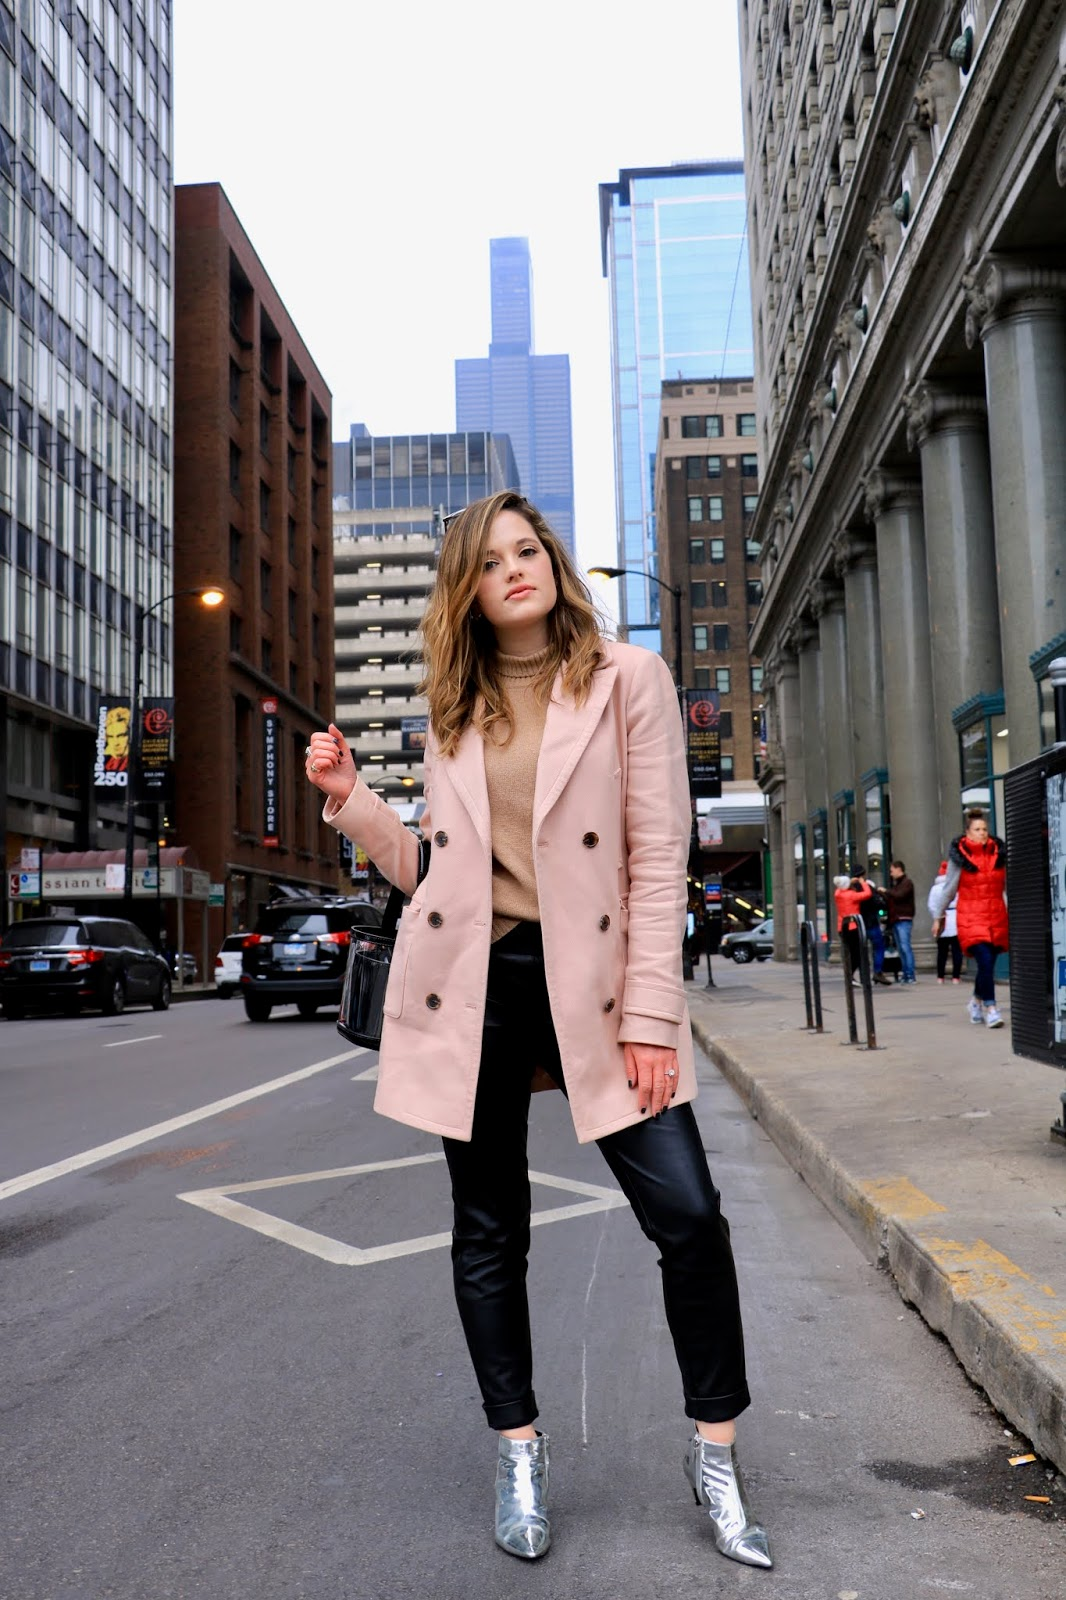 Chicago fashion blogger Kathleen Harper wearing an outfit with metallic silver boots.